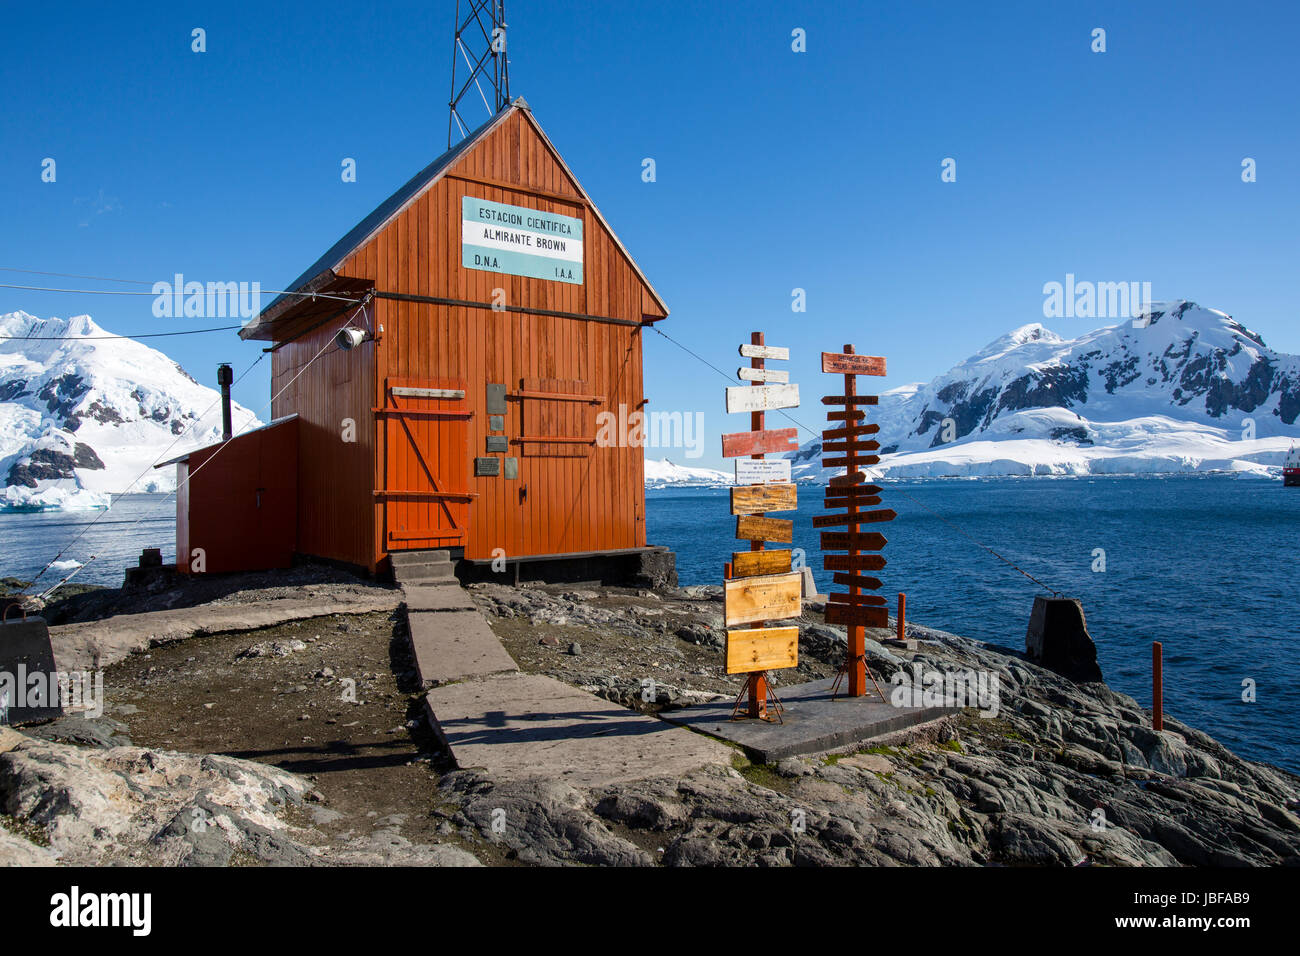 Almirante Brown Argentina research station, Antarctica - Stock Image